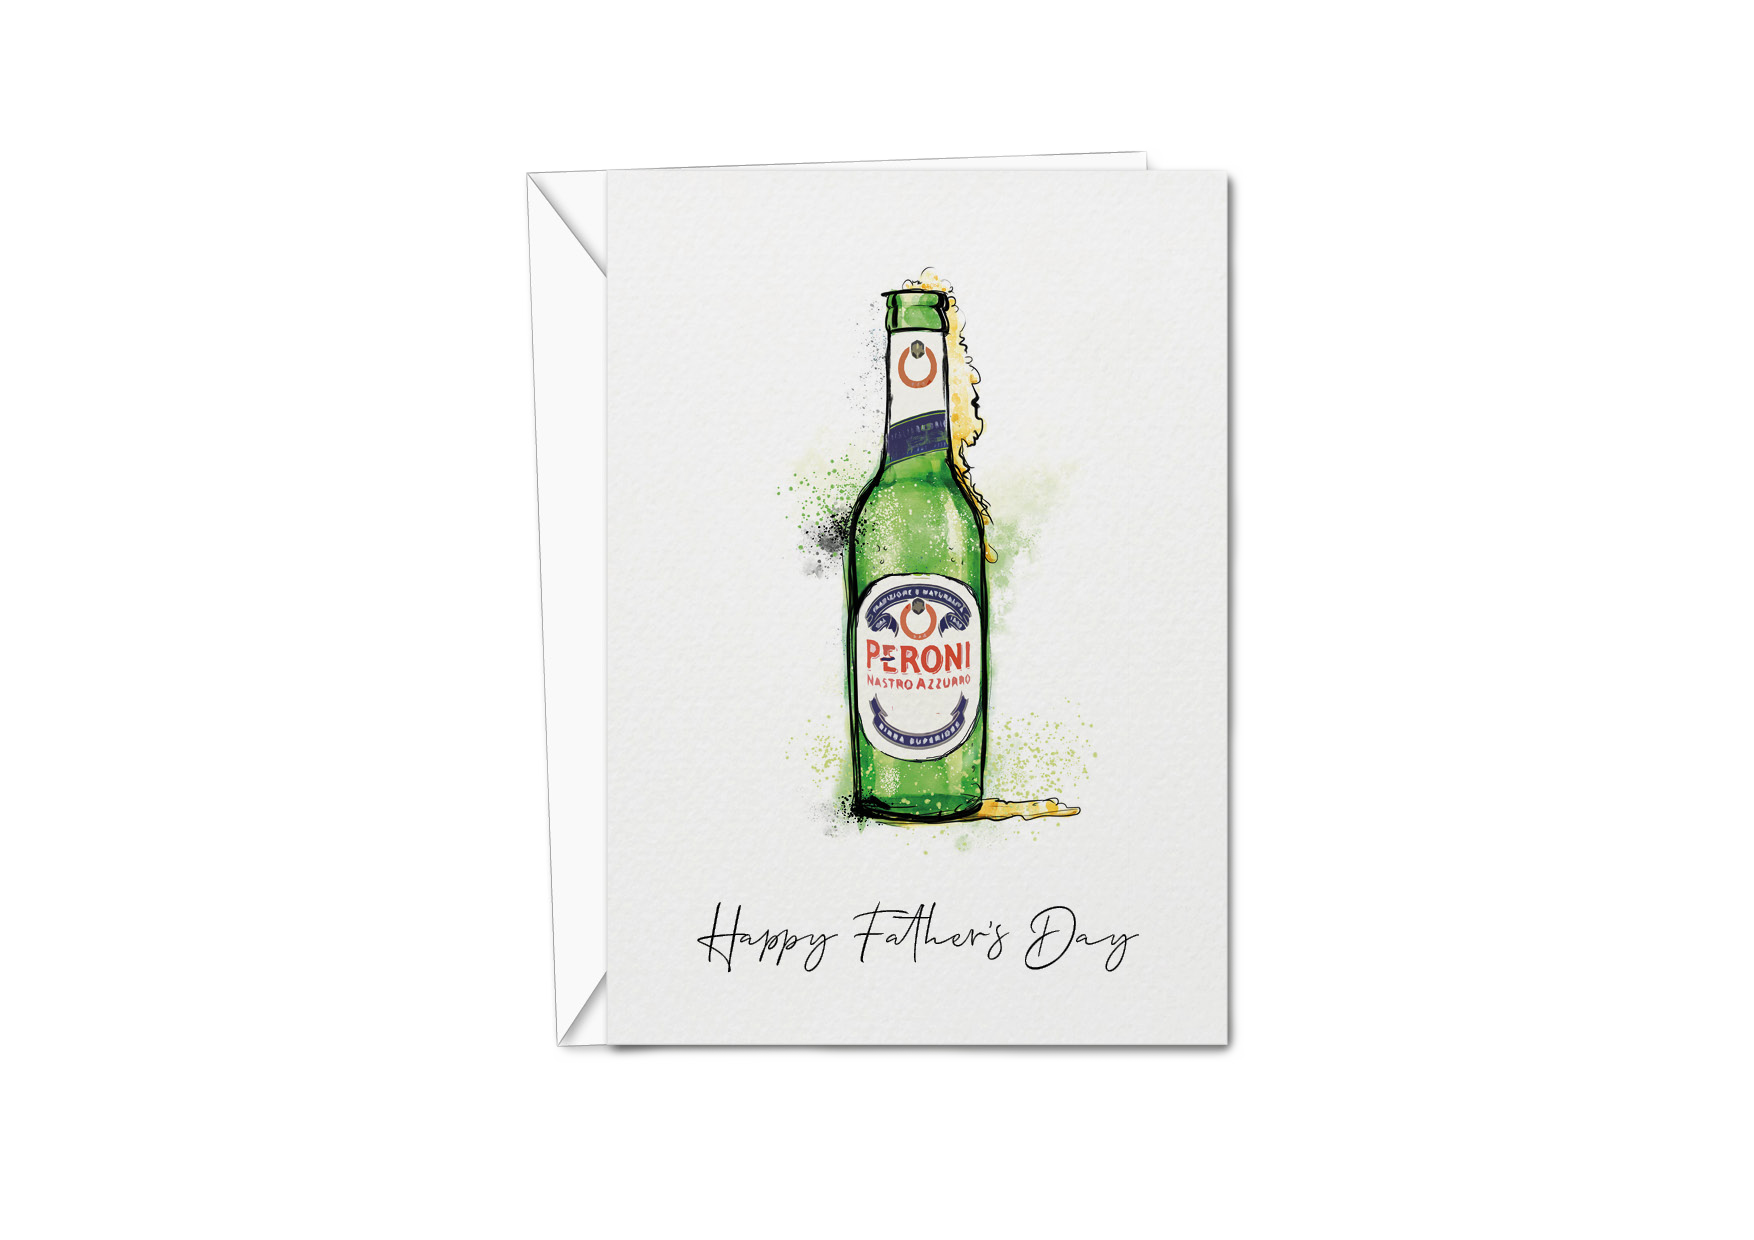 Father's Day Card - Peroni Bottle